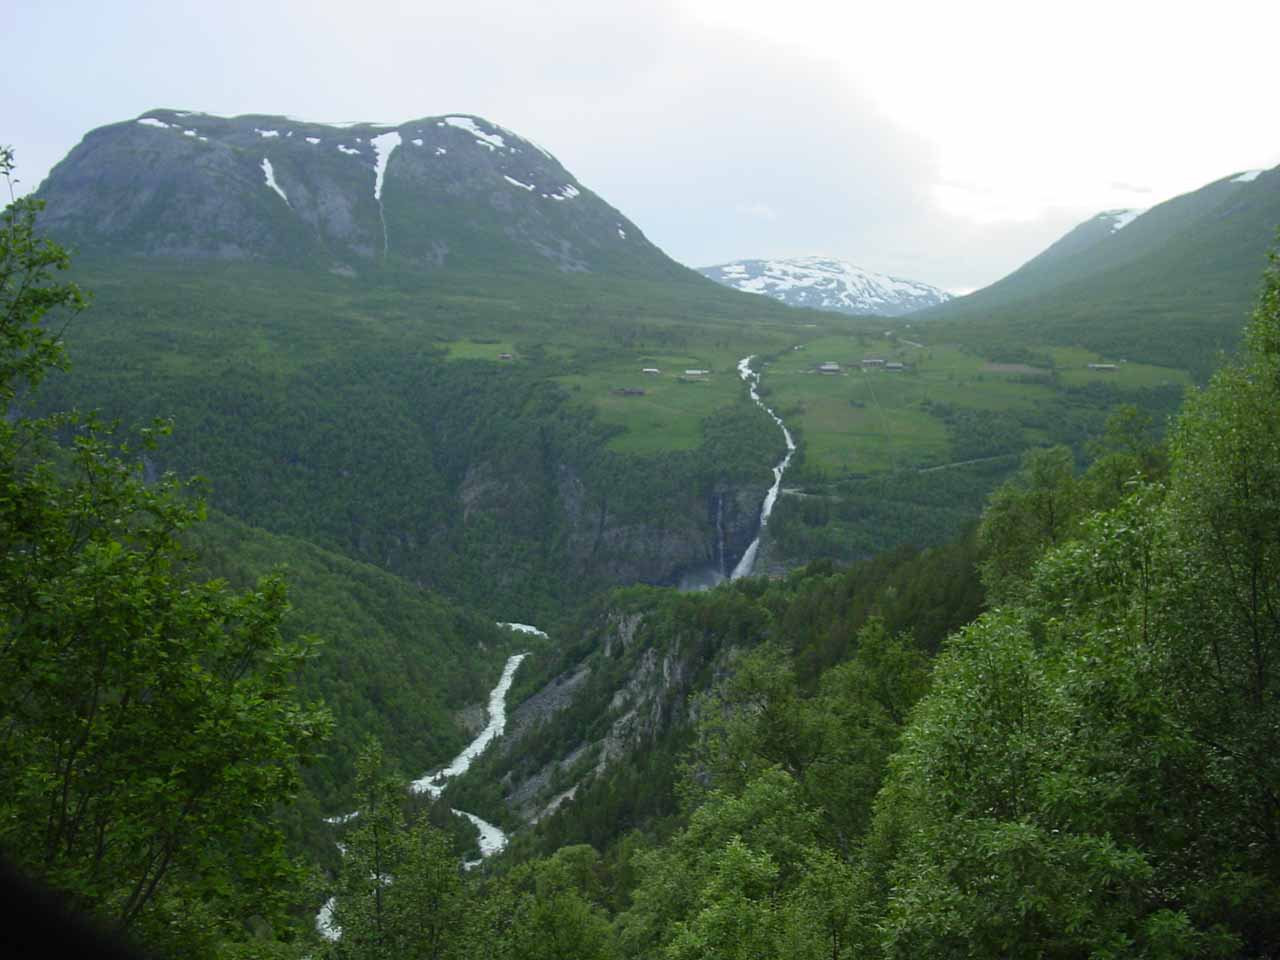 When the Linndalsfossen trail opened up, I got this distant view of Linndøla converging towards the base of Svøufossen with Svisdalen further upstream from the falls